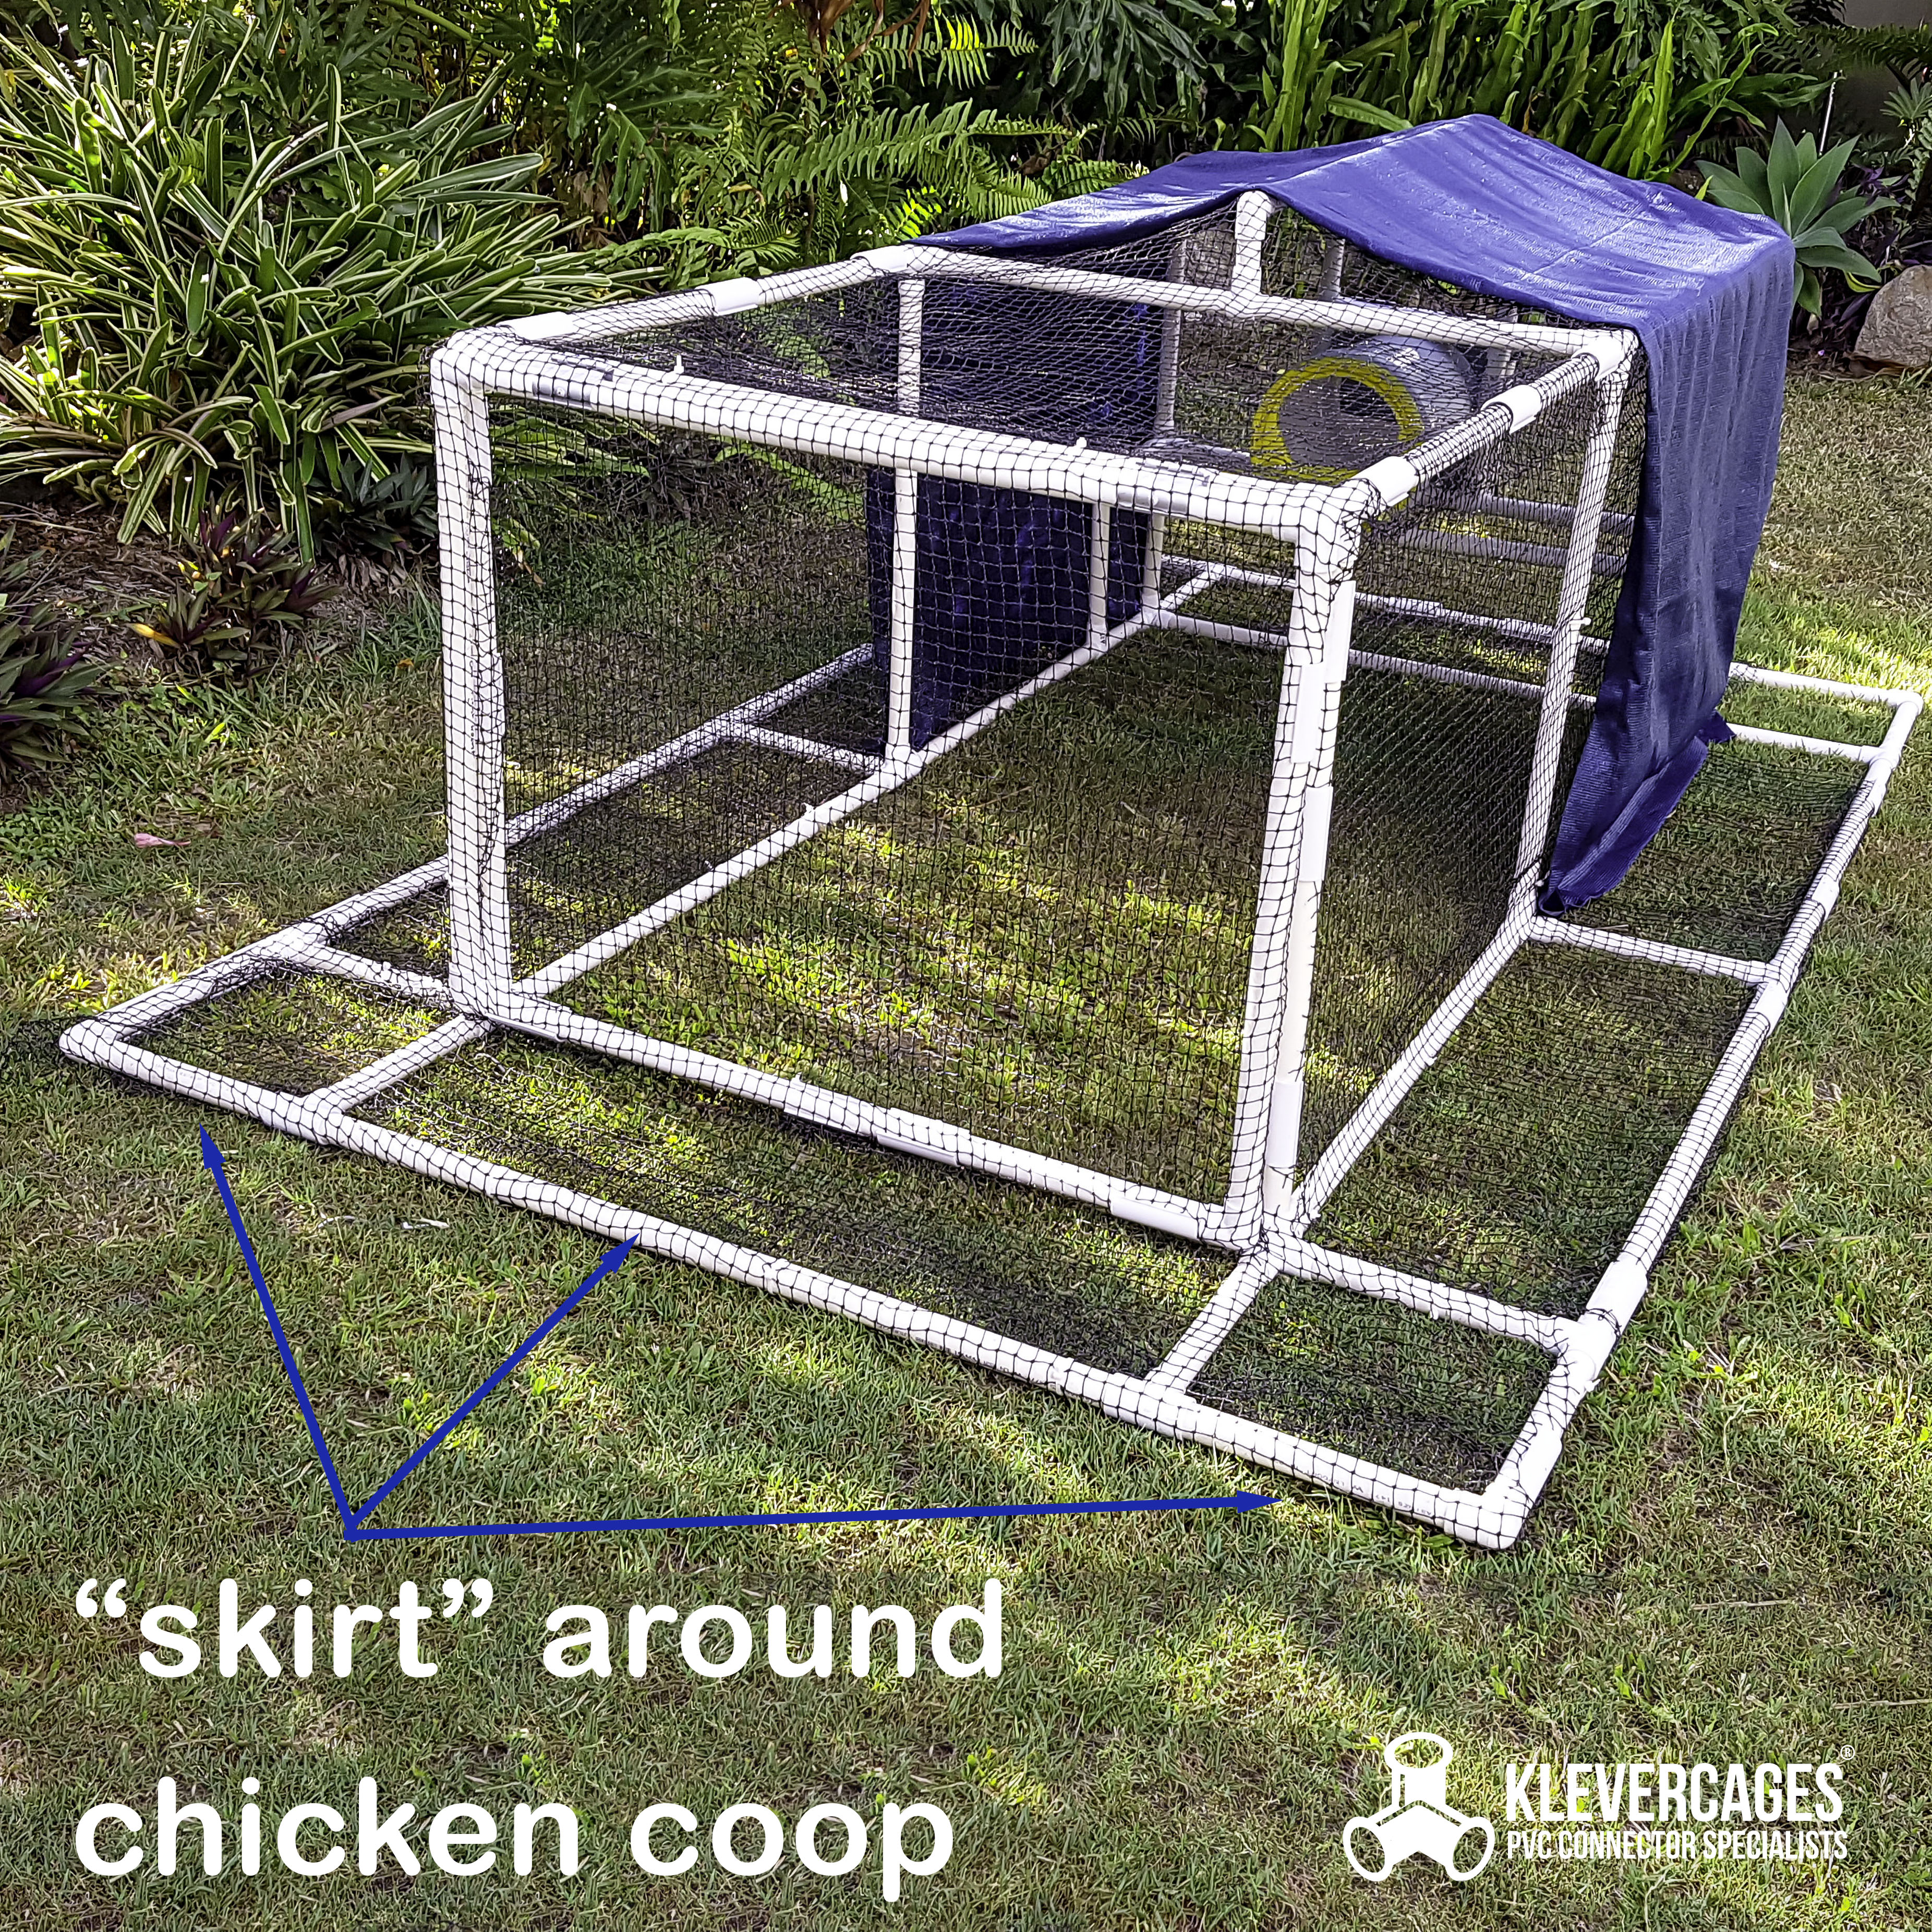 Premium Chicken coop with a skirt to keep your chickens safe. Shade over the top of the PVC pipe and connector tractor